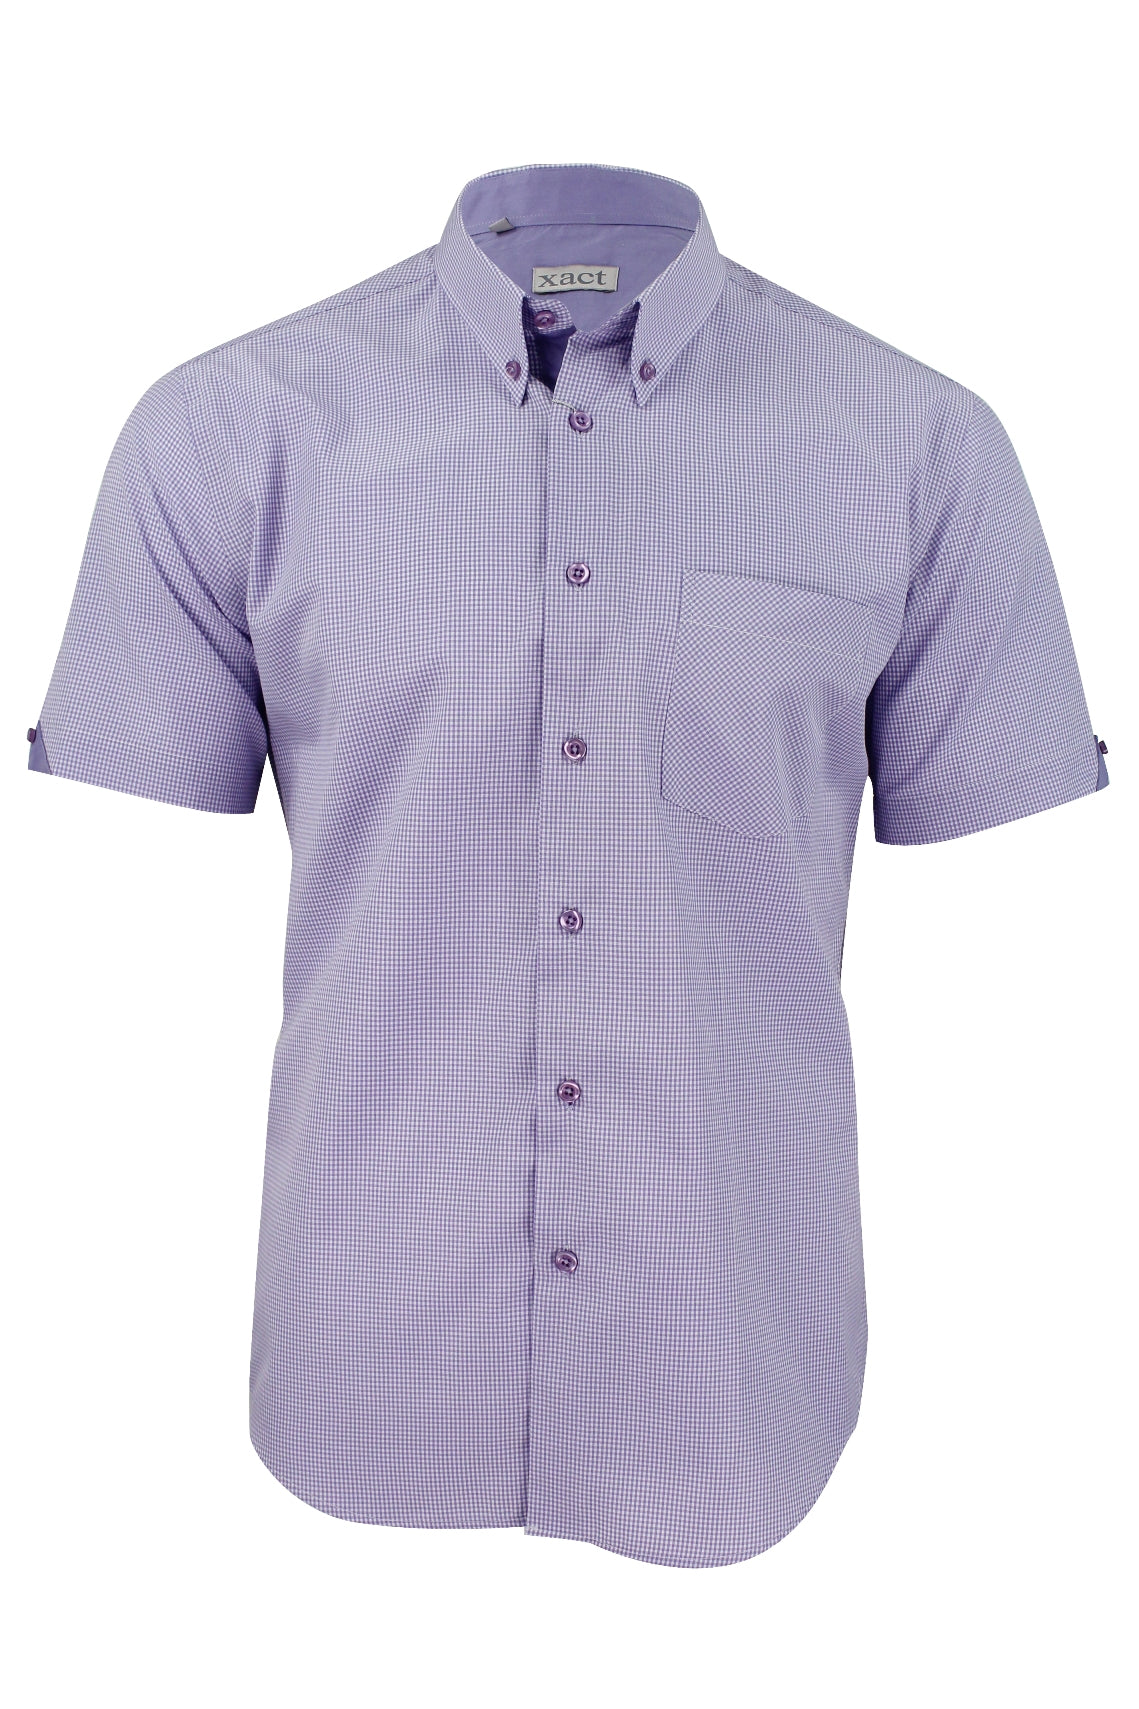 Mens Short Sleeved Shirt by Xact Clothing Micro Gingham Check-Main Image